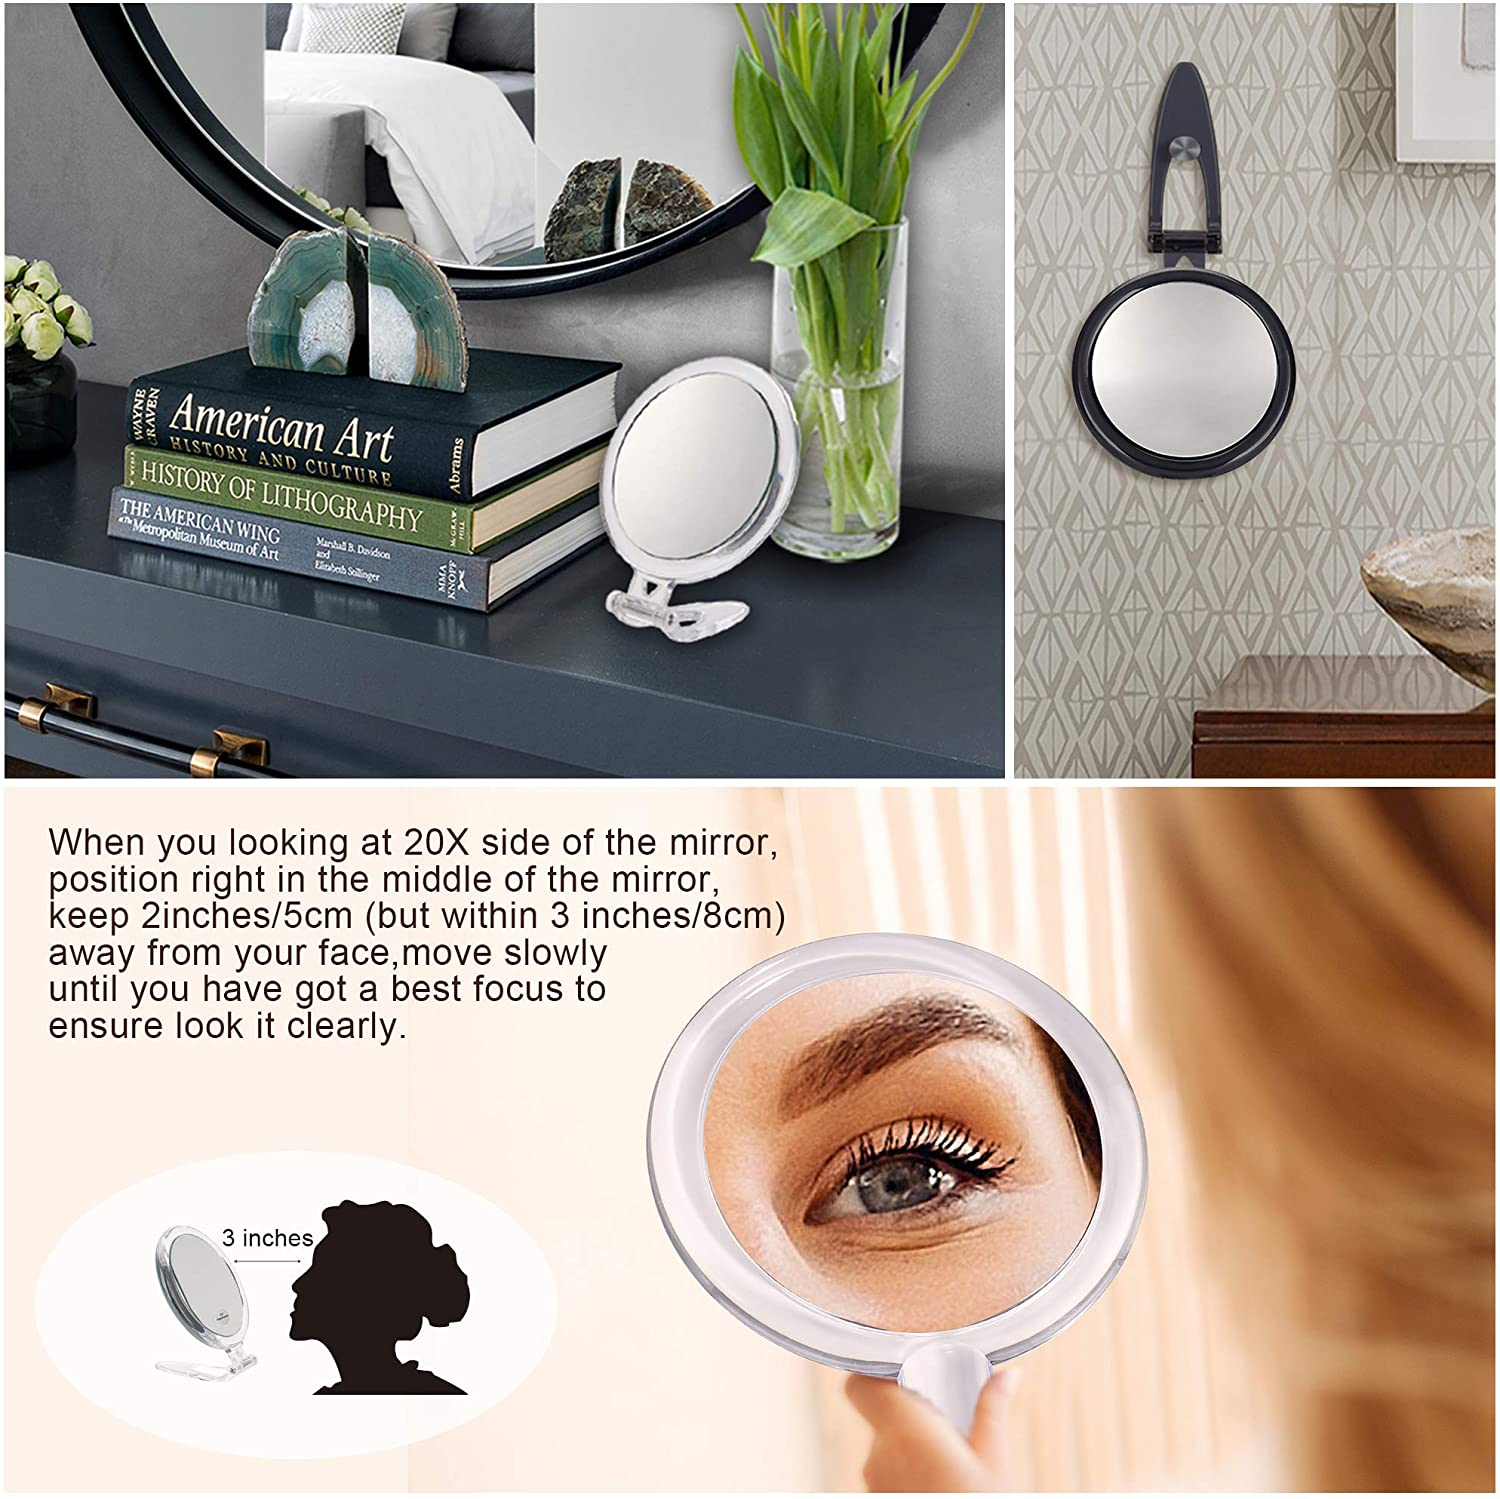 Purple Two Sided Mirror 20X//1X Magnification Folding Makeup Mirror with Handheld//Stand,Use for Makeup Application Tweezing 5Inch,20X Magnifying Mirror and Blackhead//Blemish Removal.